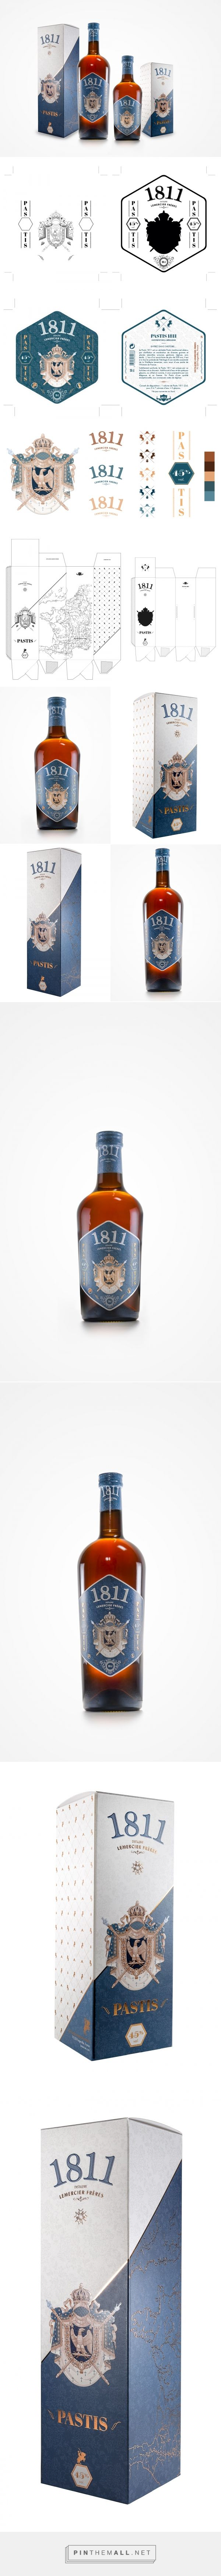 Pastis 1811- Packaging of the World - Creative Package Design Gallery - http://www.packagingoftheworld.com/2017/01/pastis-1811.html